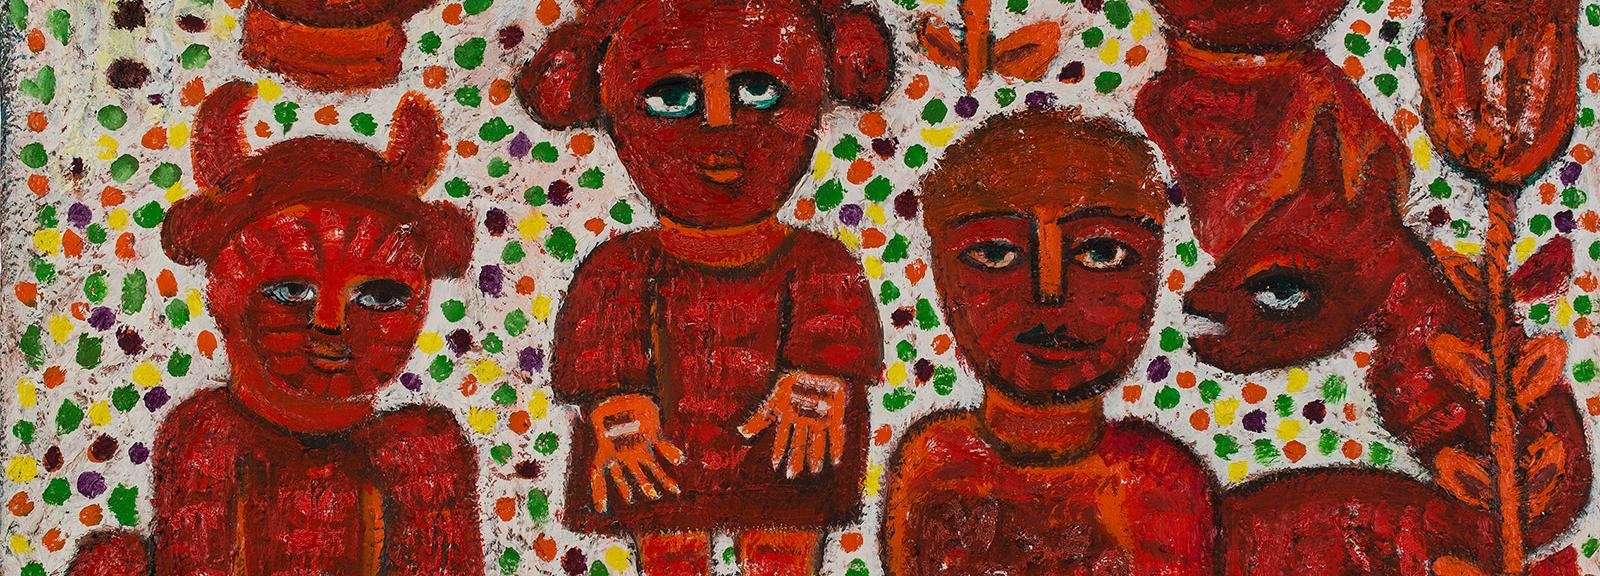 Mirka Mora, She Devils and Friends 1989–95, oil on canvas, 76 x 101.5 cm, Courtesy of the artist and William Mora Galleries, Melbourne, © the artist